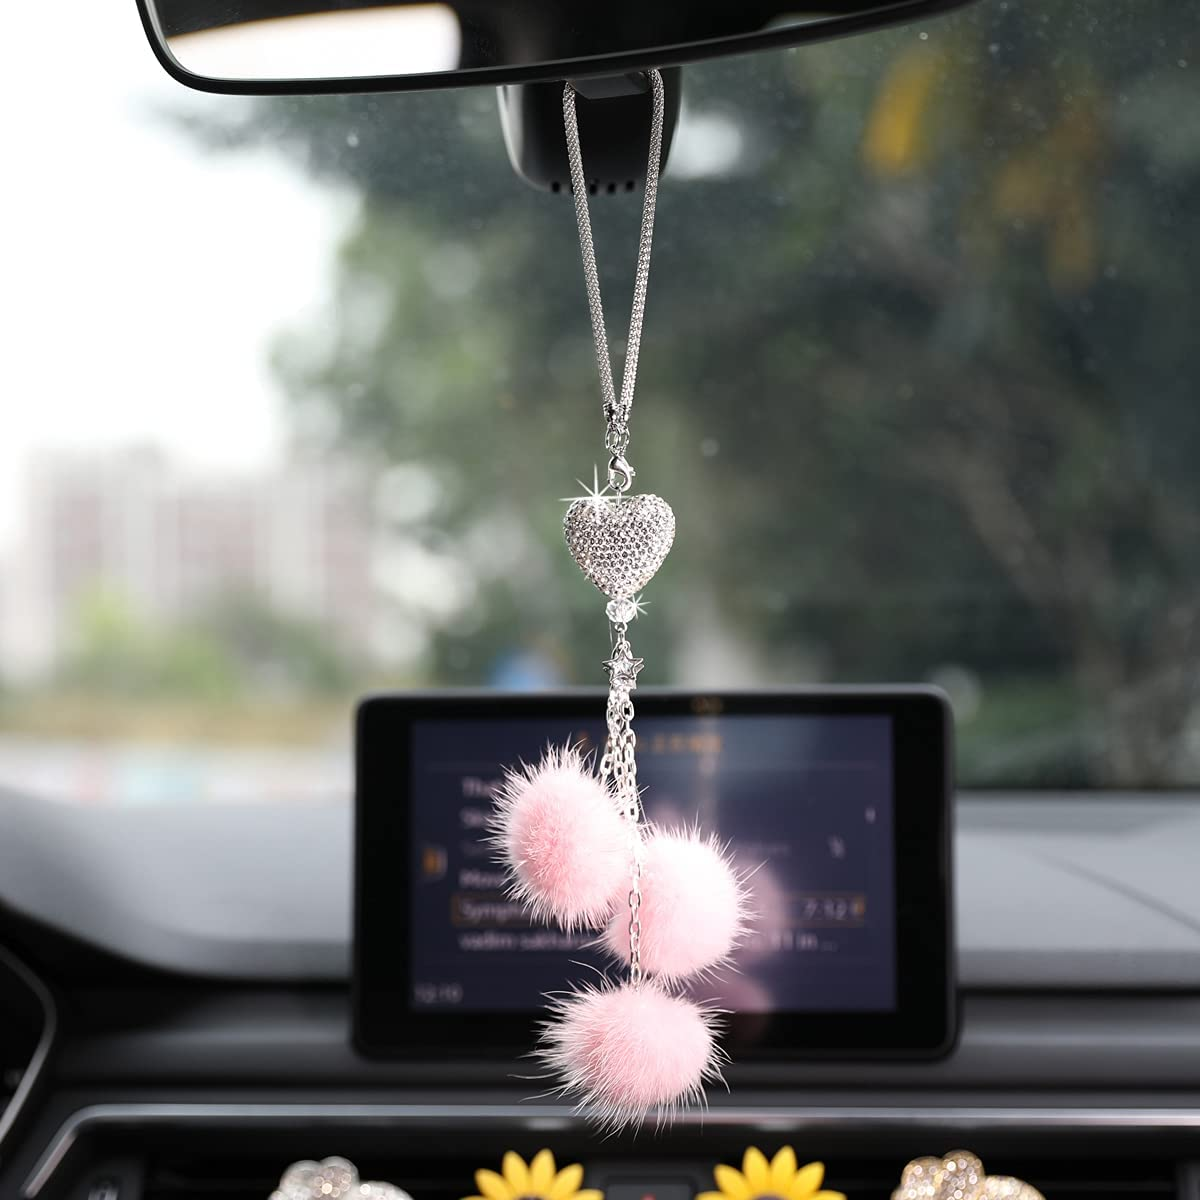 TANAAB Car Accessories for Women Interior Cute, Bling Rear View Mirror Accessories Rhinestones Diamond White Heart Pink Fuzzy Drops Mirror Hanging Ornament Girly Car Decor for Girl Lucky Love - Pink